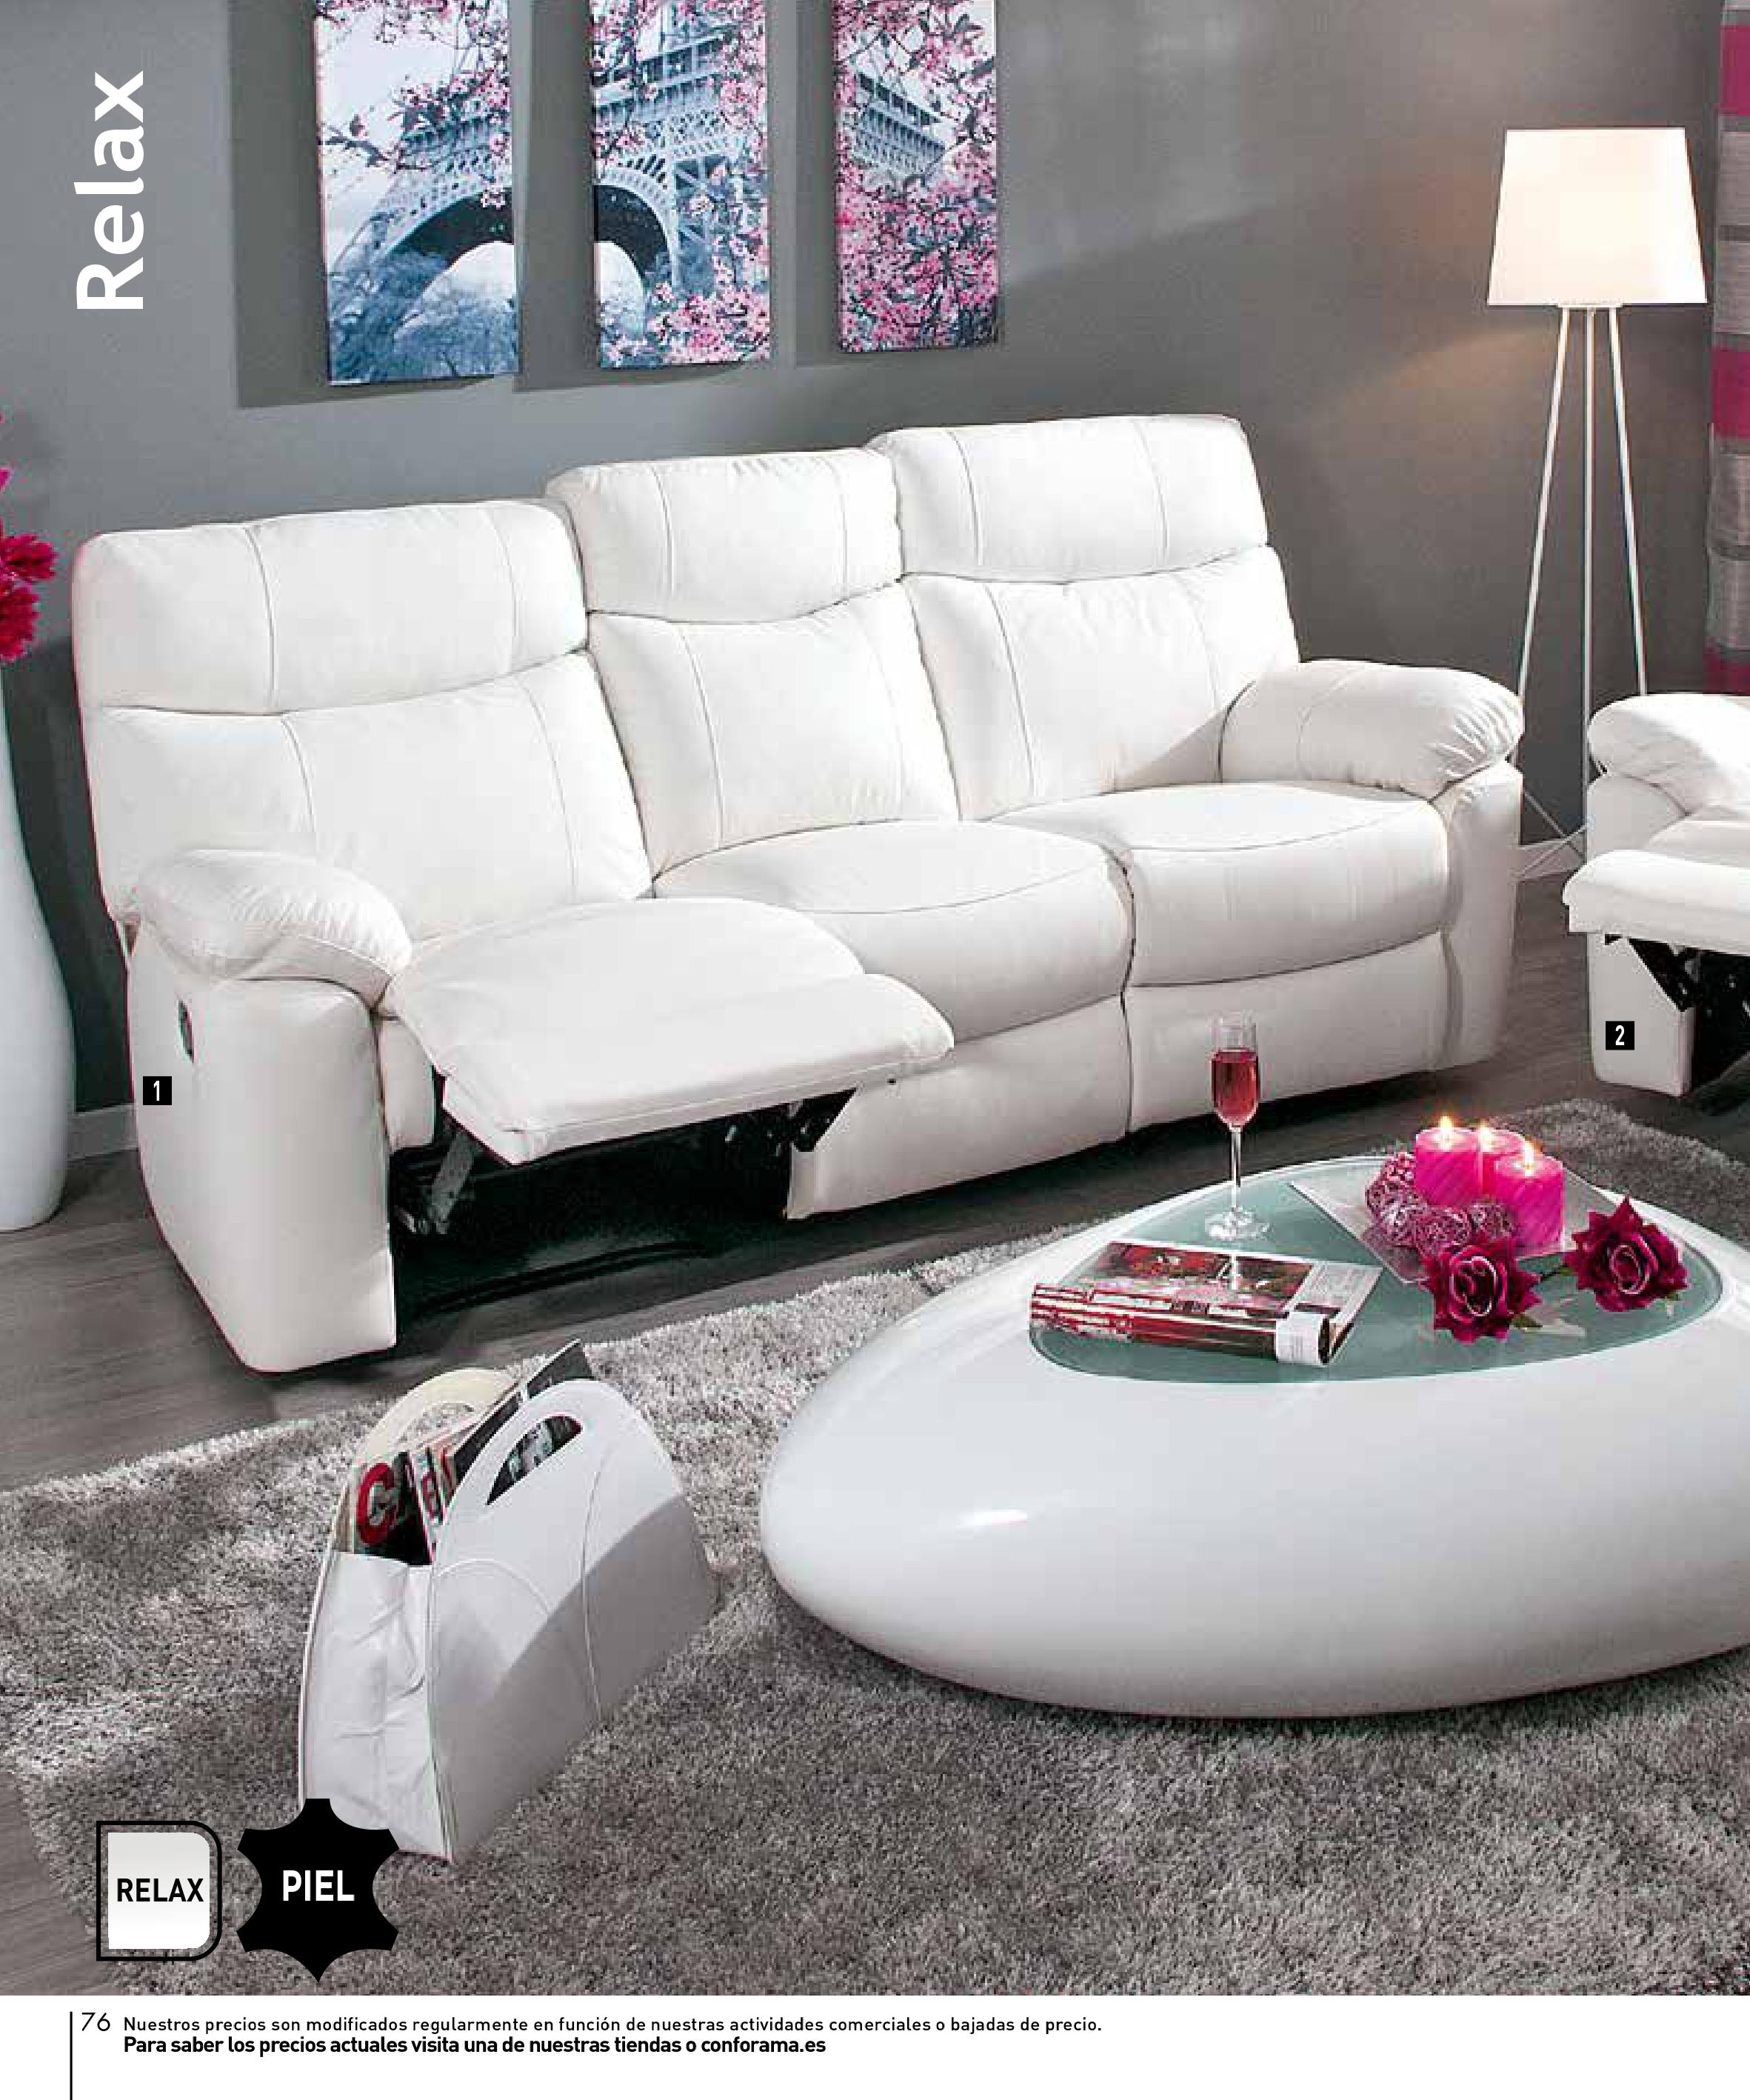 Sofas conforama 201576 for Sofas conforama catalogo